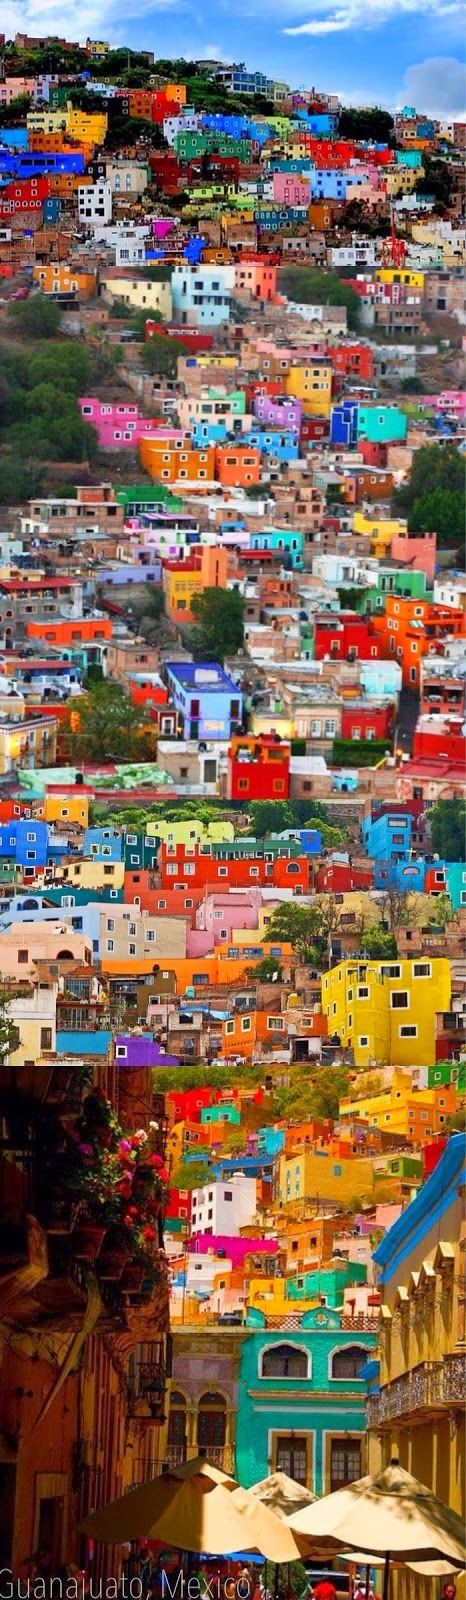 Guanajuato, Mexico#Photography #Breathtaking